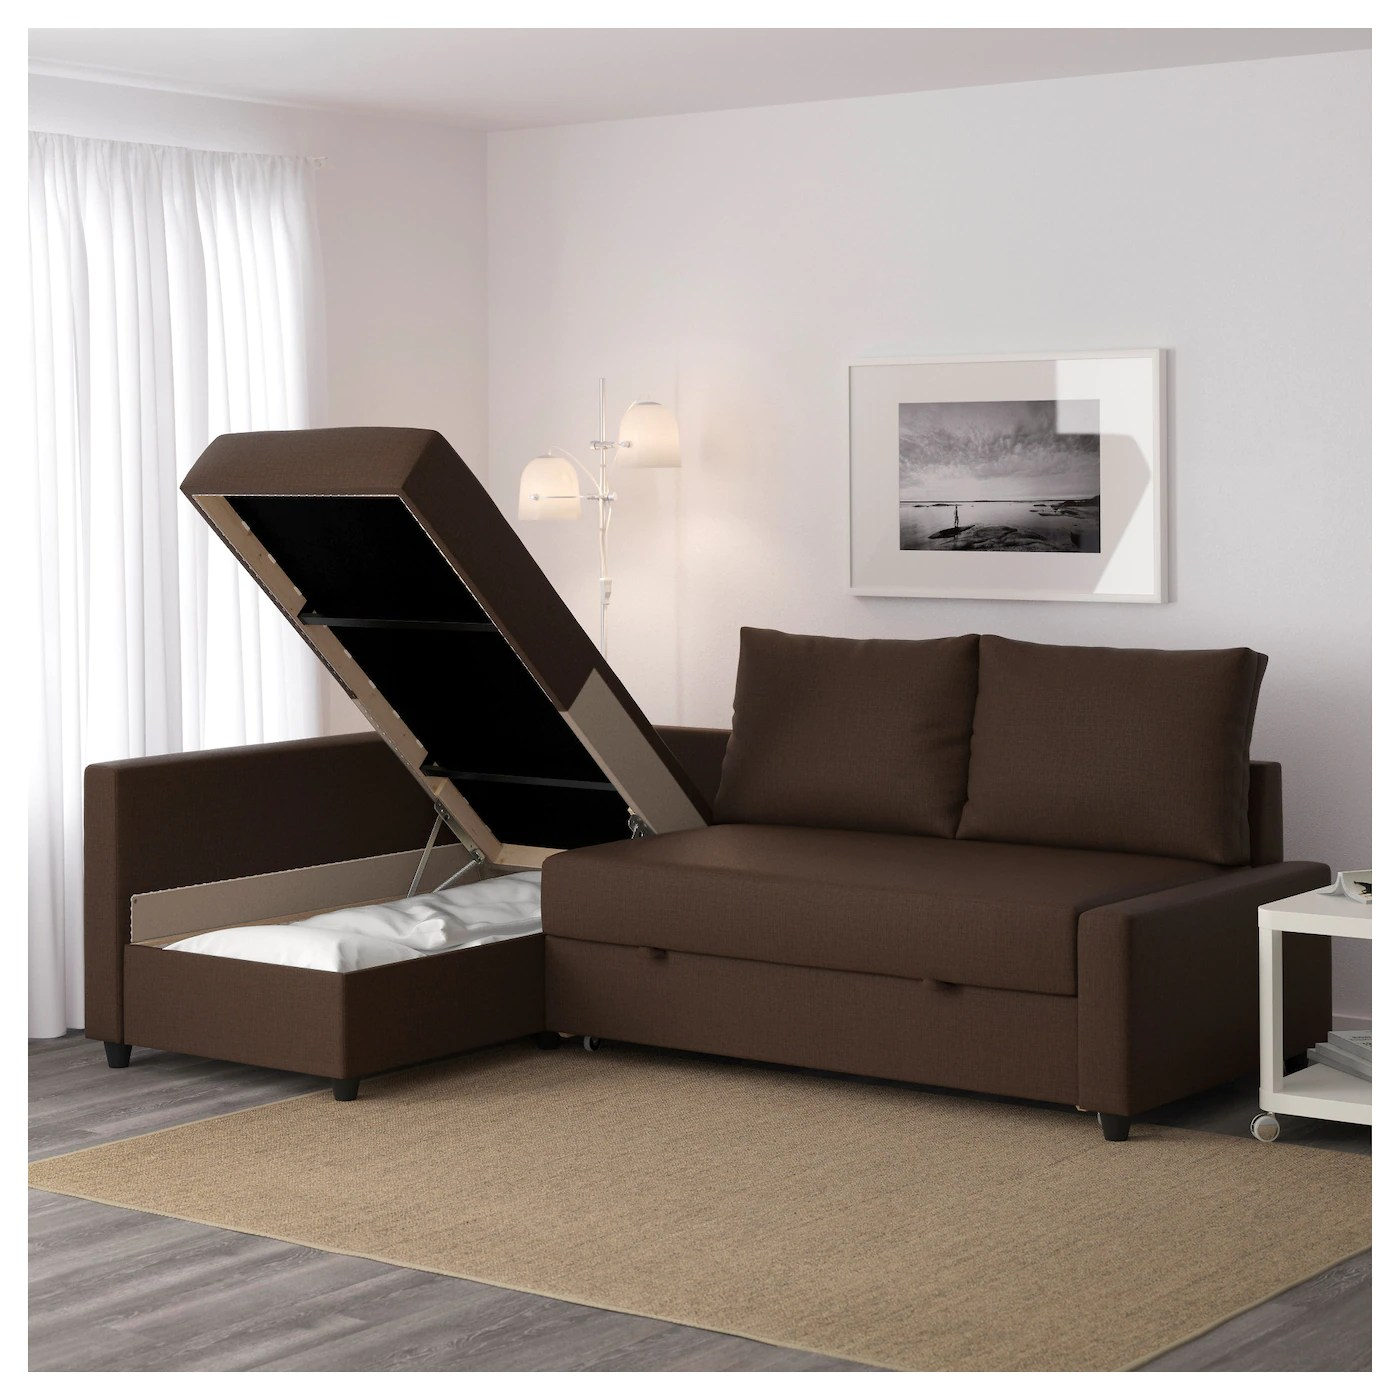 chair converts to bed broyhill bonded leather manager friheten corner sofa-bed with storage skiftebo brown - ikea